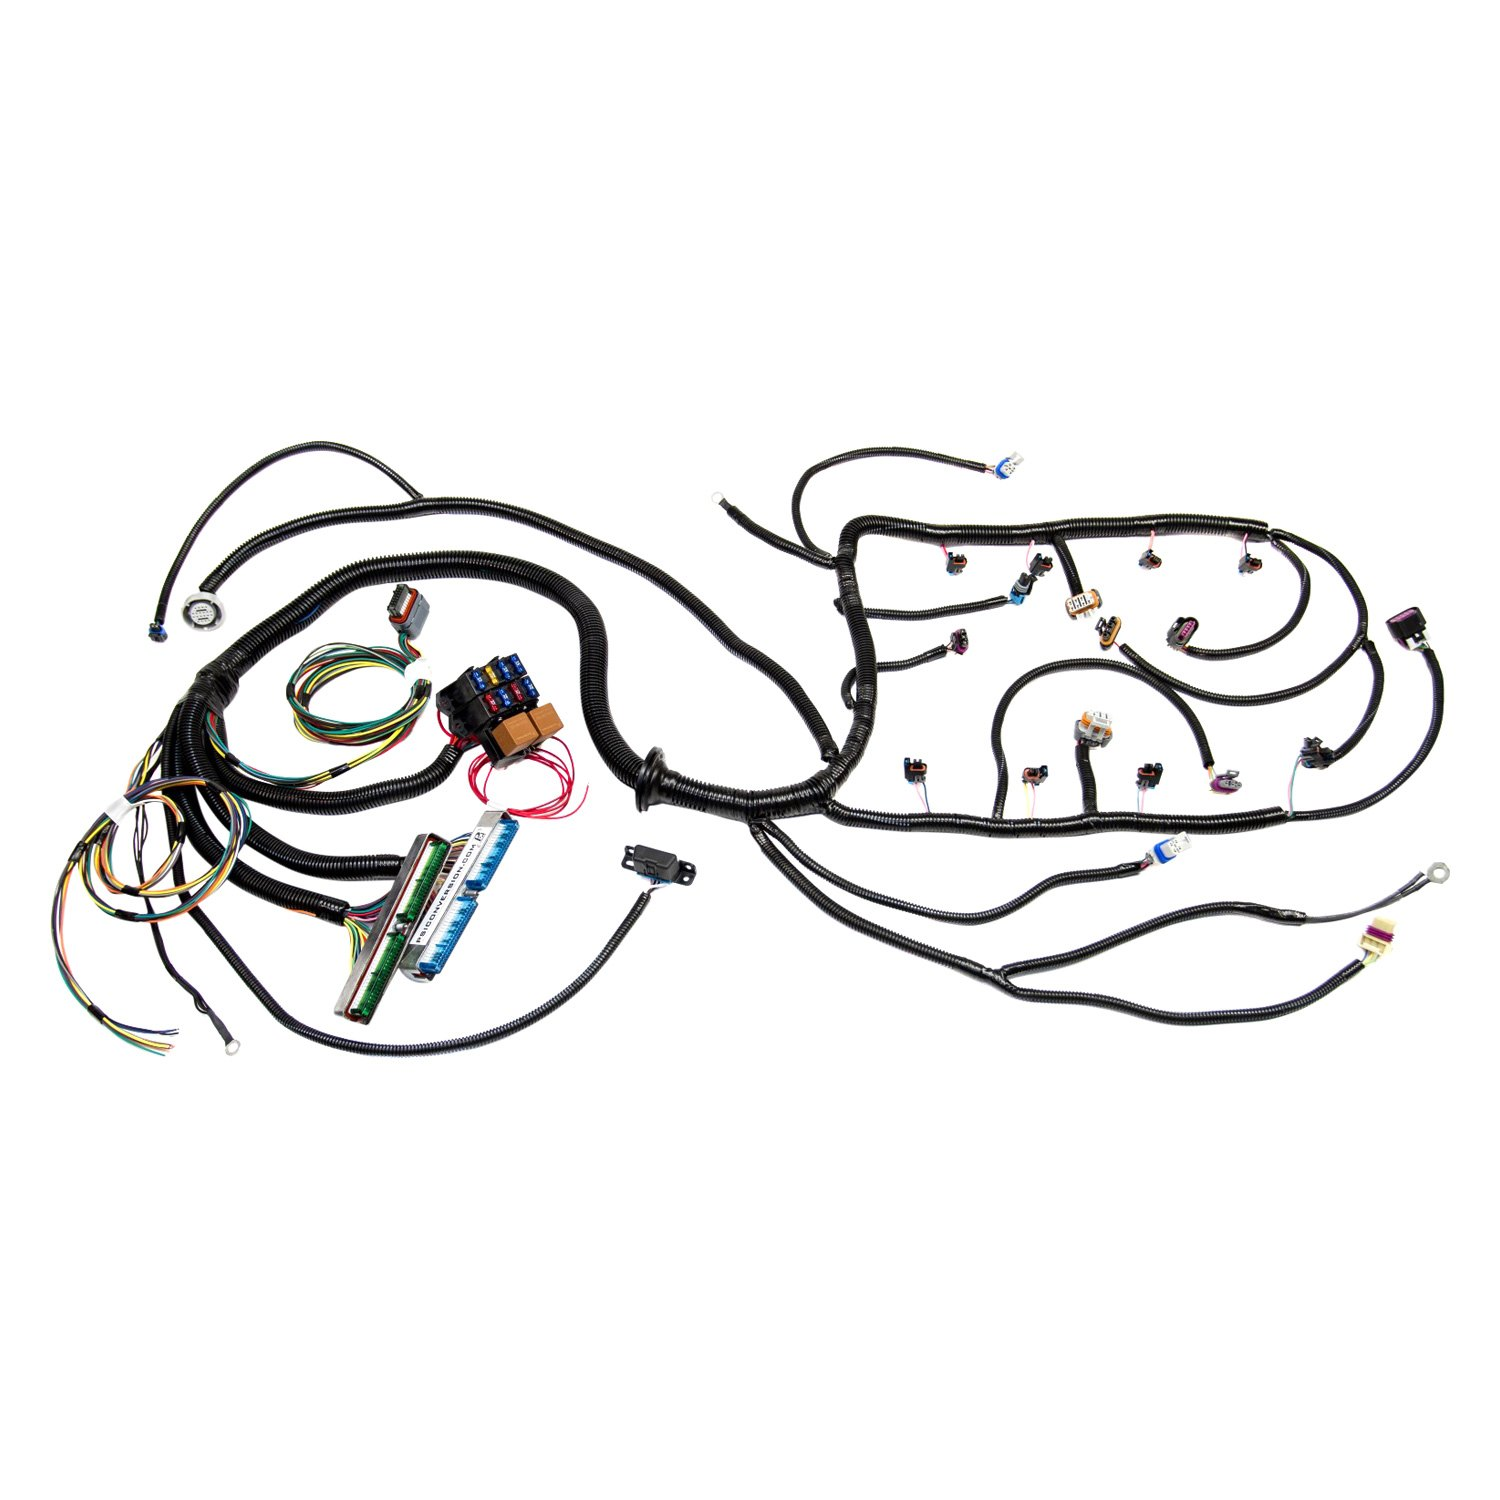 Psi Lt1 Wiring Harness Trusted Diagram 1993 Standalone Har 1030 Dbw Rh Carid Com Engine Pinout 93